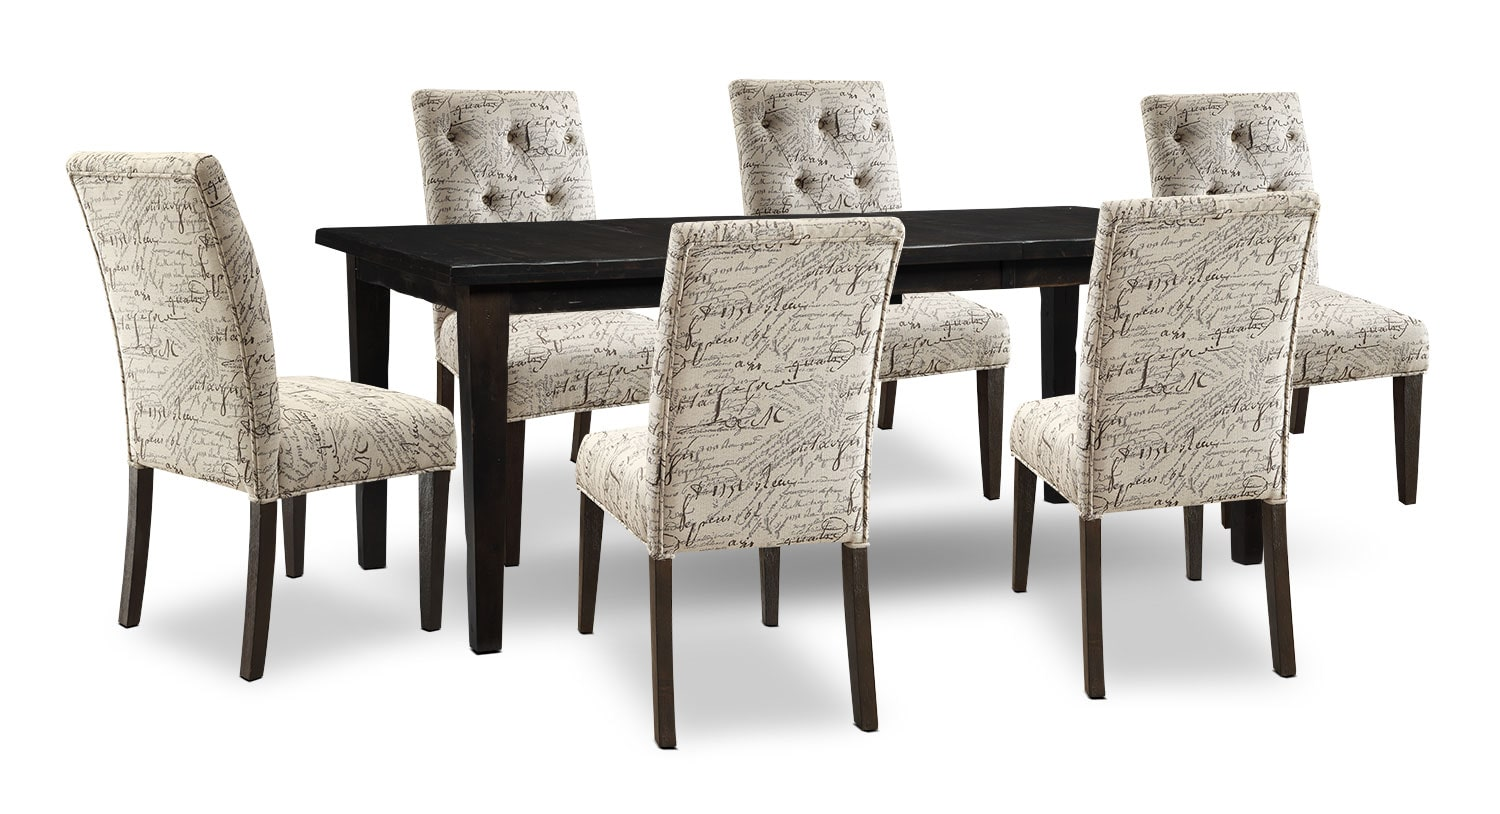 Dining Room Furniture - Bordeaux 7-Piece Dining Package with Script Chairs, Single-Leaf Table – Grey